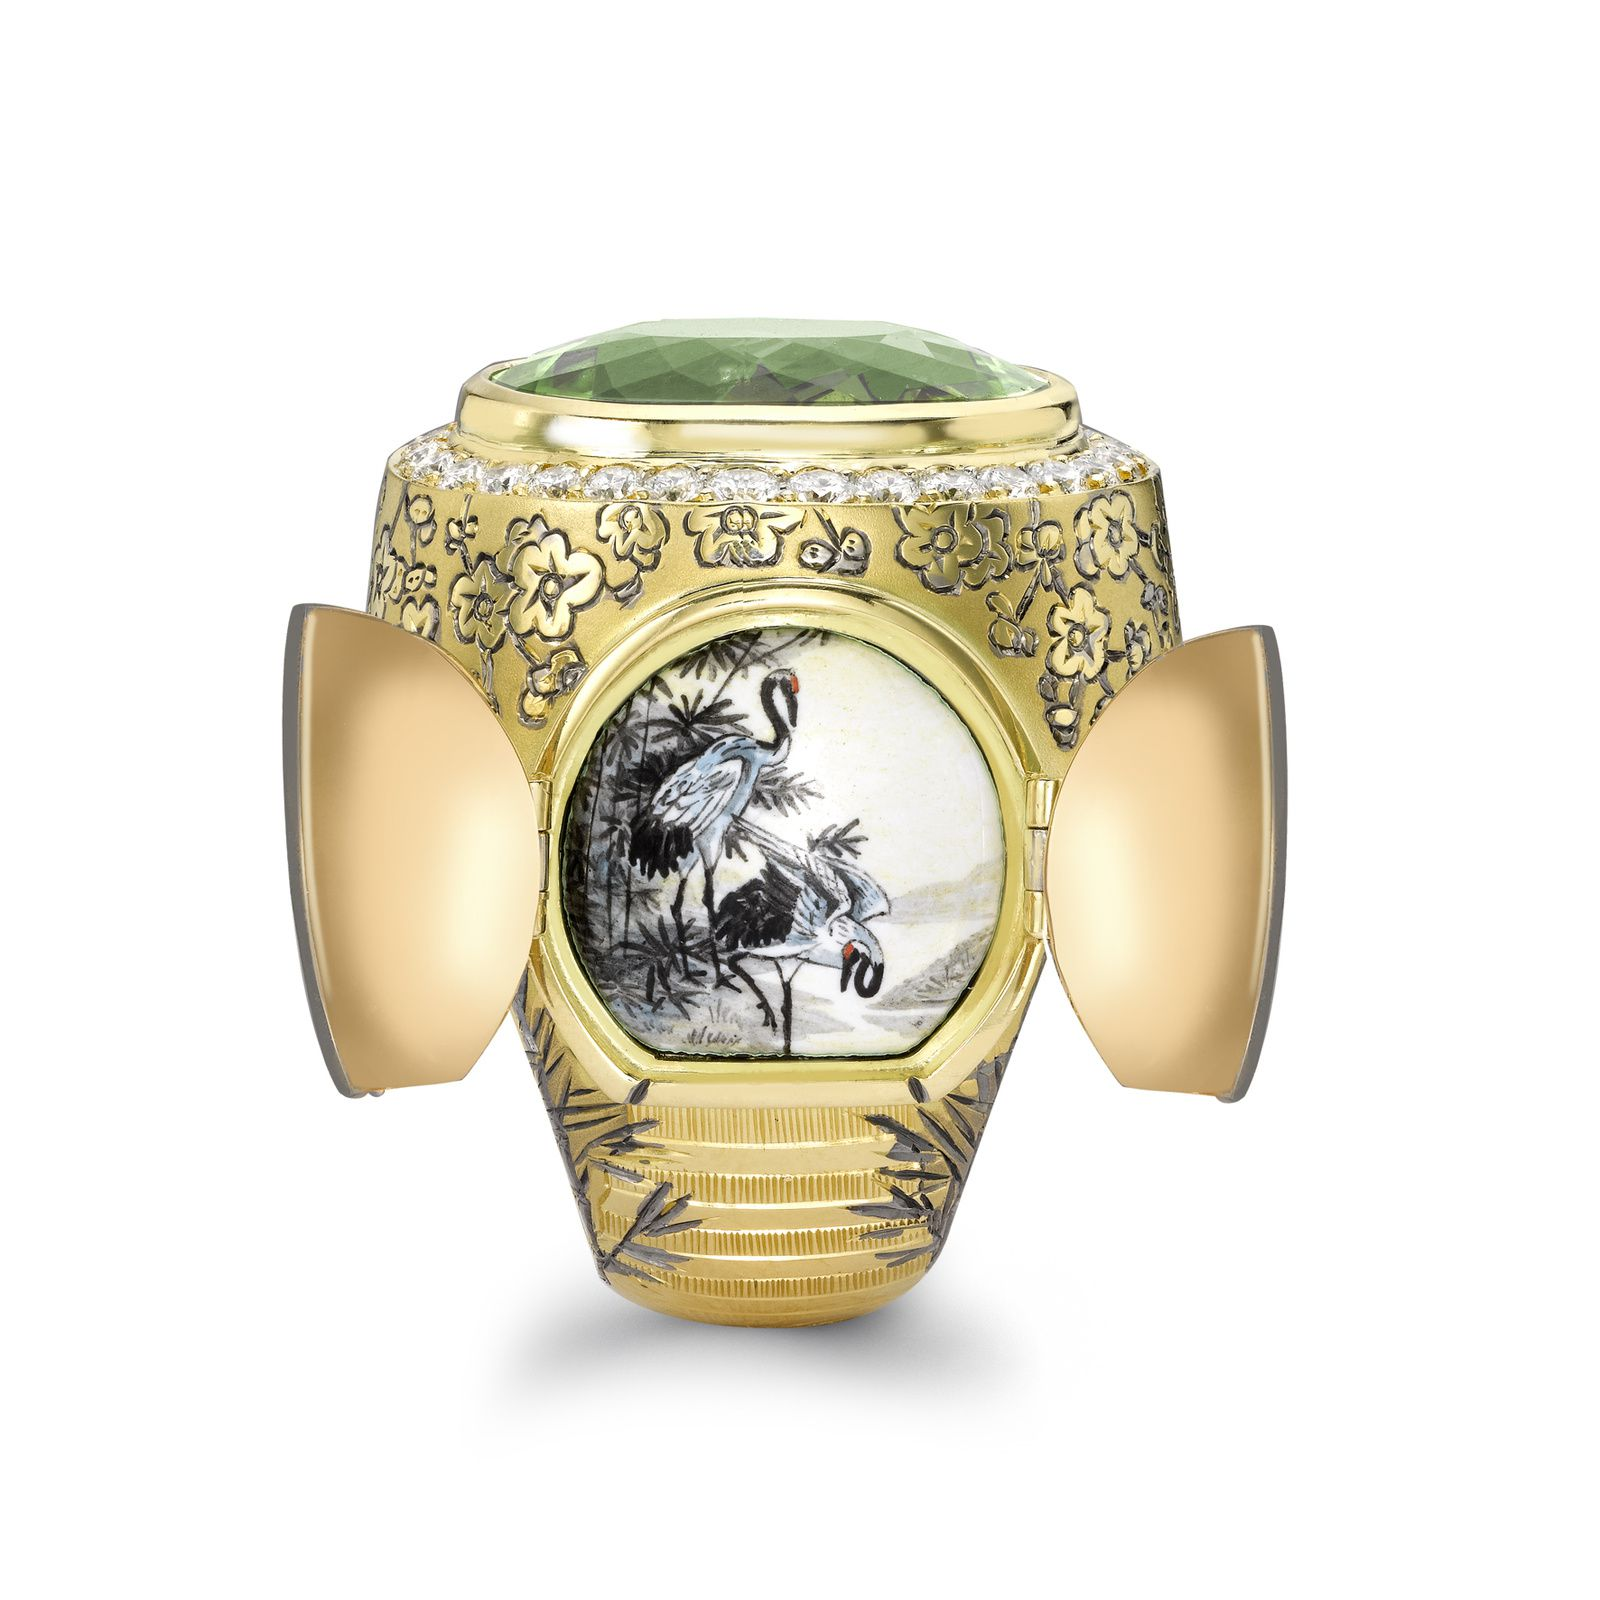 The Chinese Secret Garden Ring © Theo Fennell